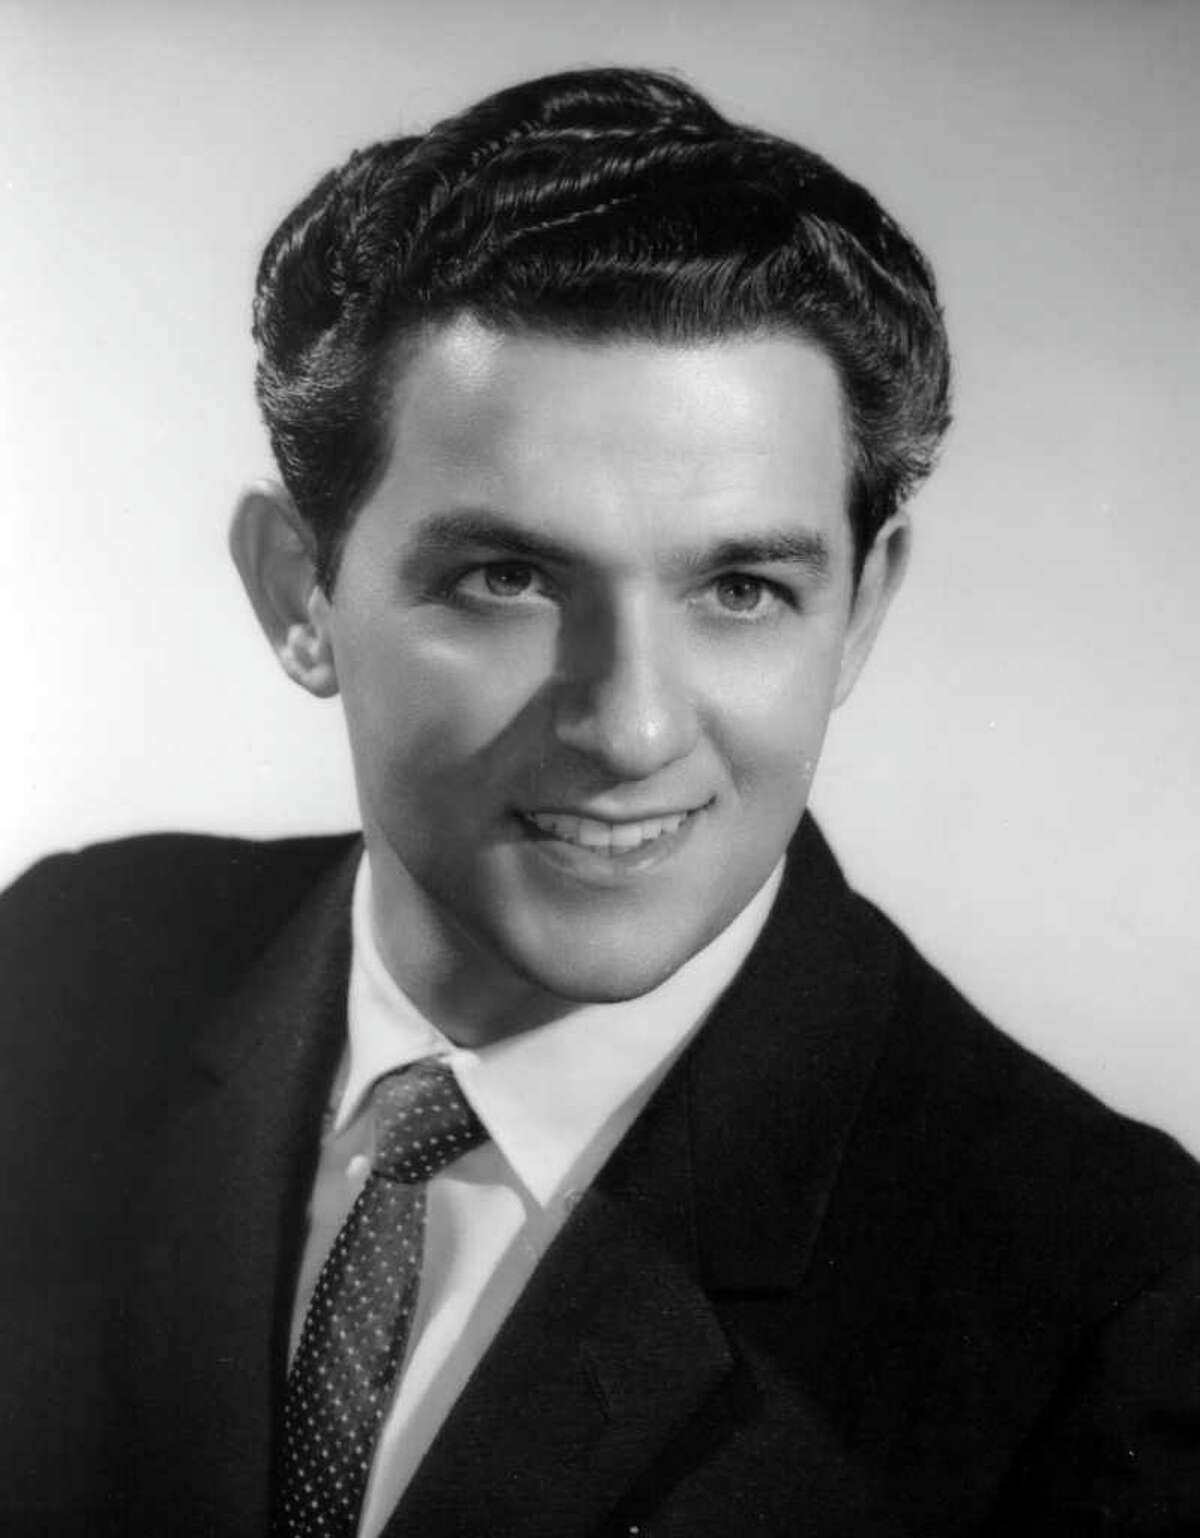 In this 1957 photo released by The Metropolitan Opera, tenor Charles Anthony is shown. Anthony, who holds the record for most appearances at the Metropolitan Opera during a career that spanned from 1954-2010, died Wednesday, Feb. 15, 2012 in Florida. He was 82. (AP Photo/The Metropolitan Opera)